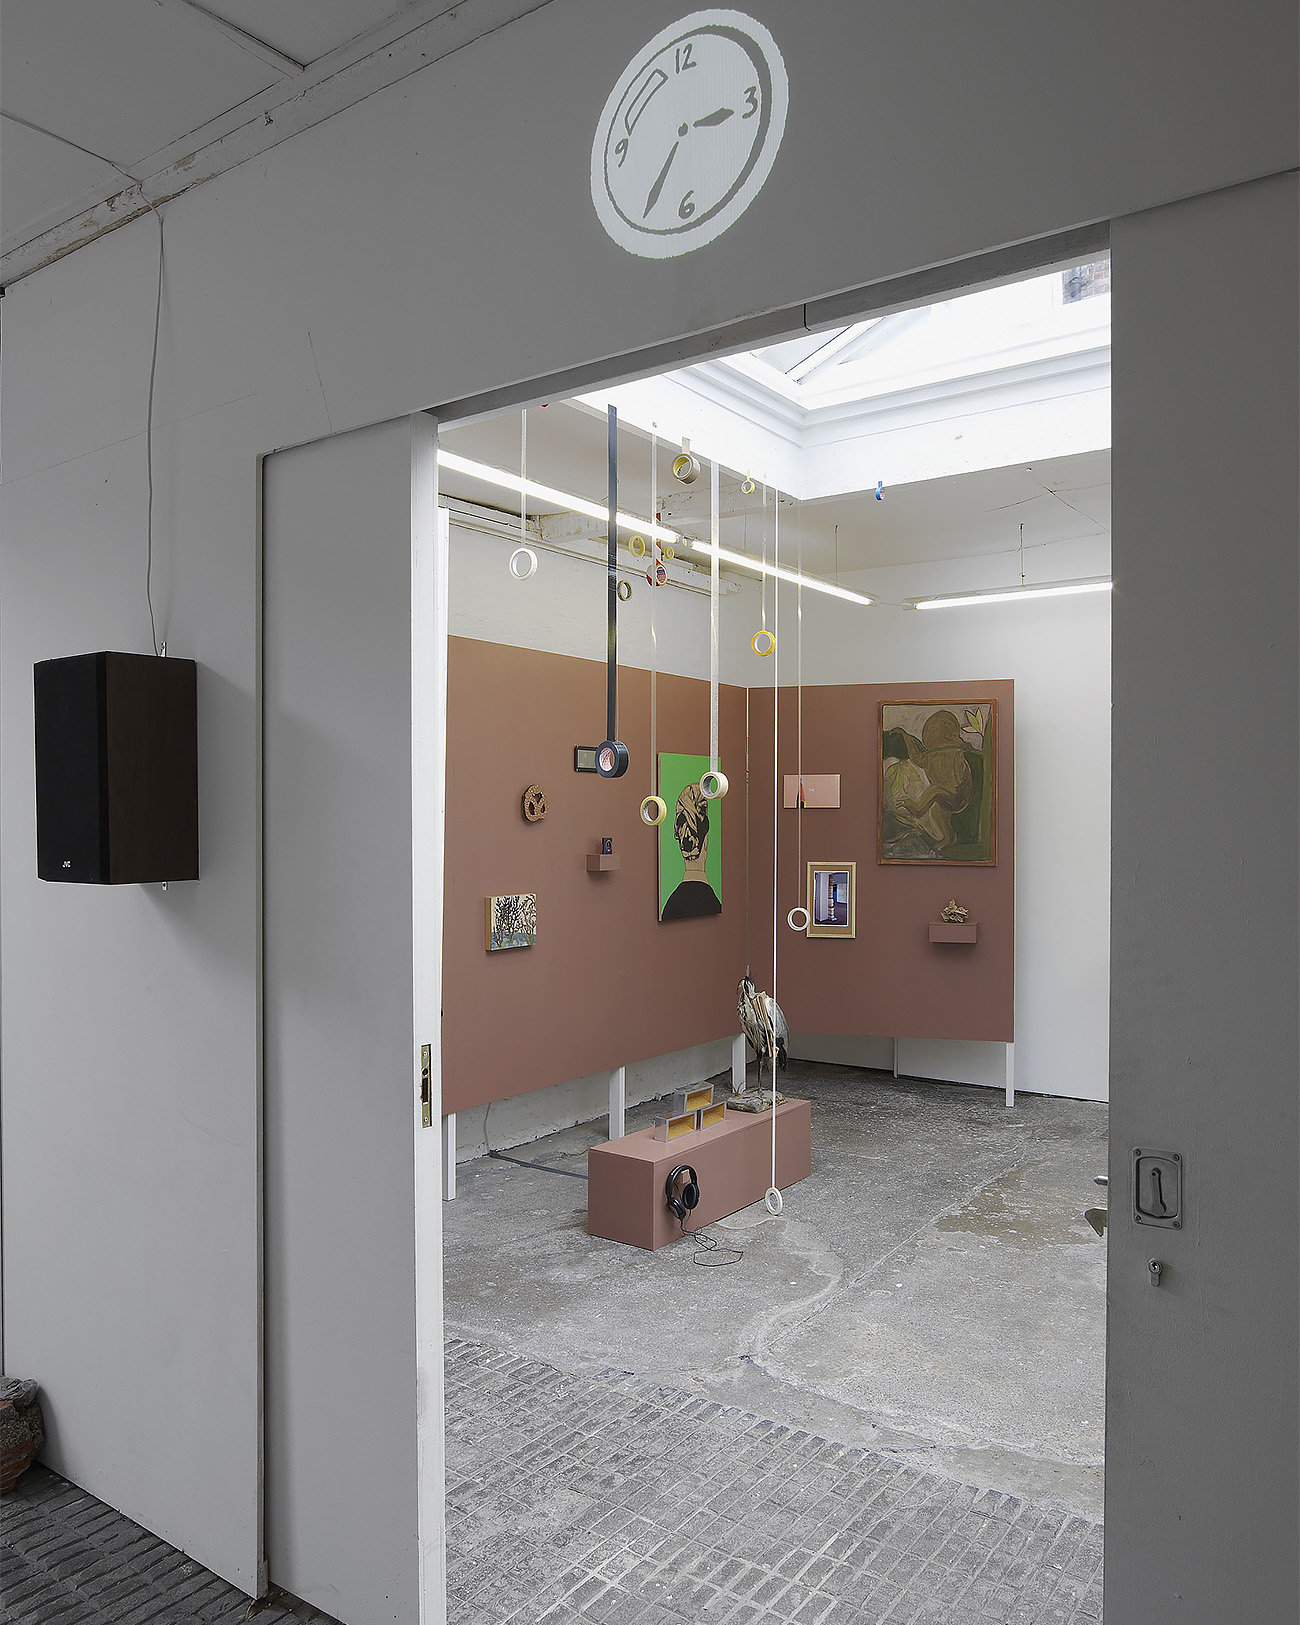 Andy holden_Dan Cox Library for th Unfinished Concept of Thingly time_Mark Leckey, Philip Jeck works.jpg